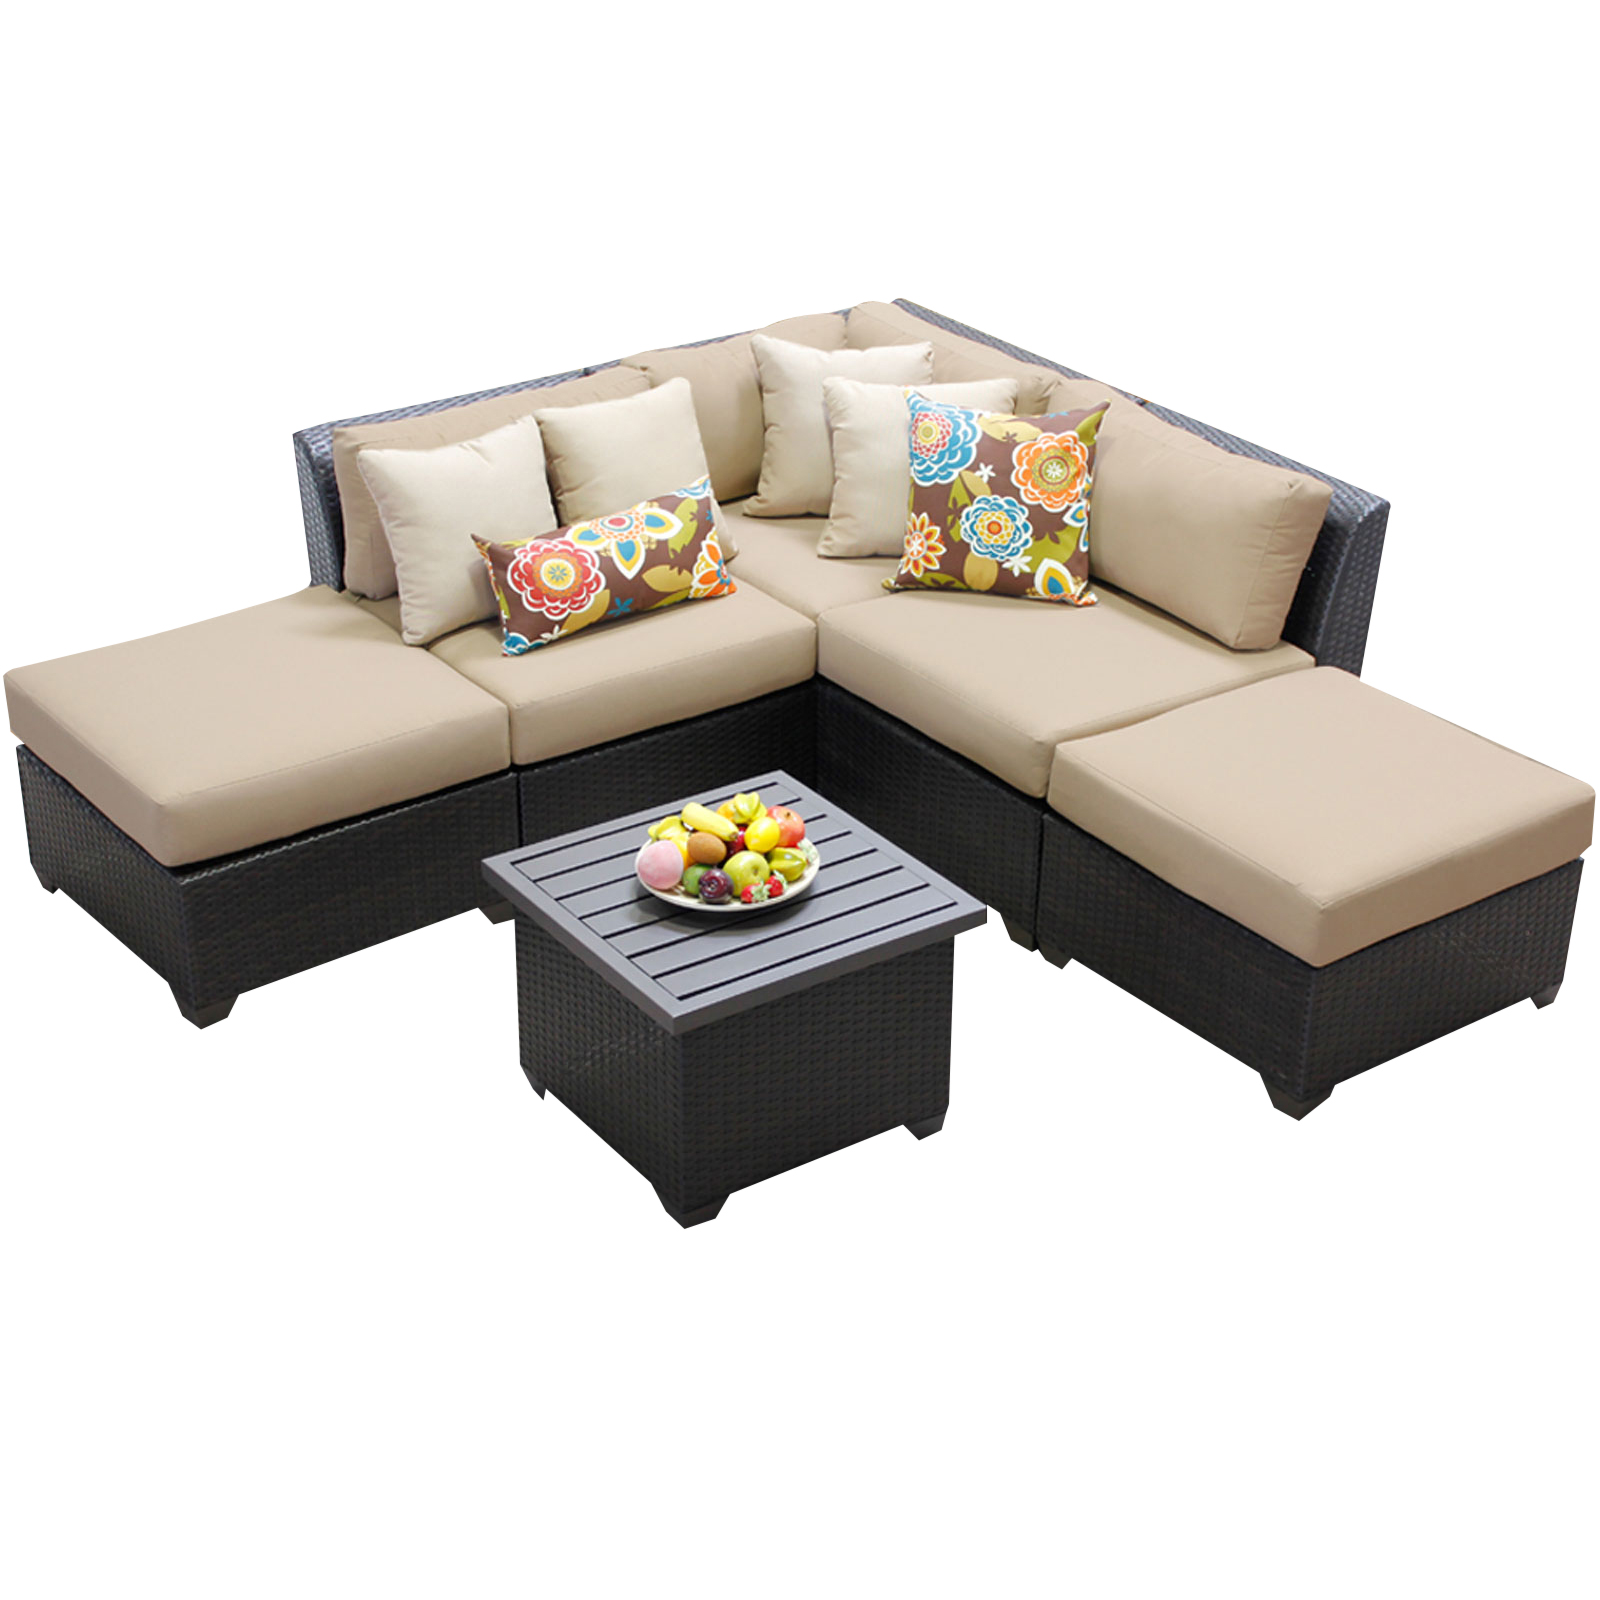 Bermuda 6 Piece Set All Weather Wicker Patio Furniture by TK Classics